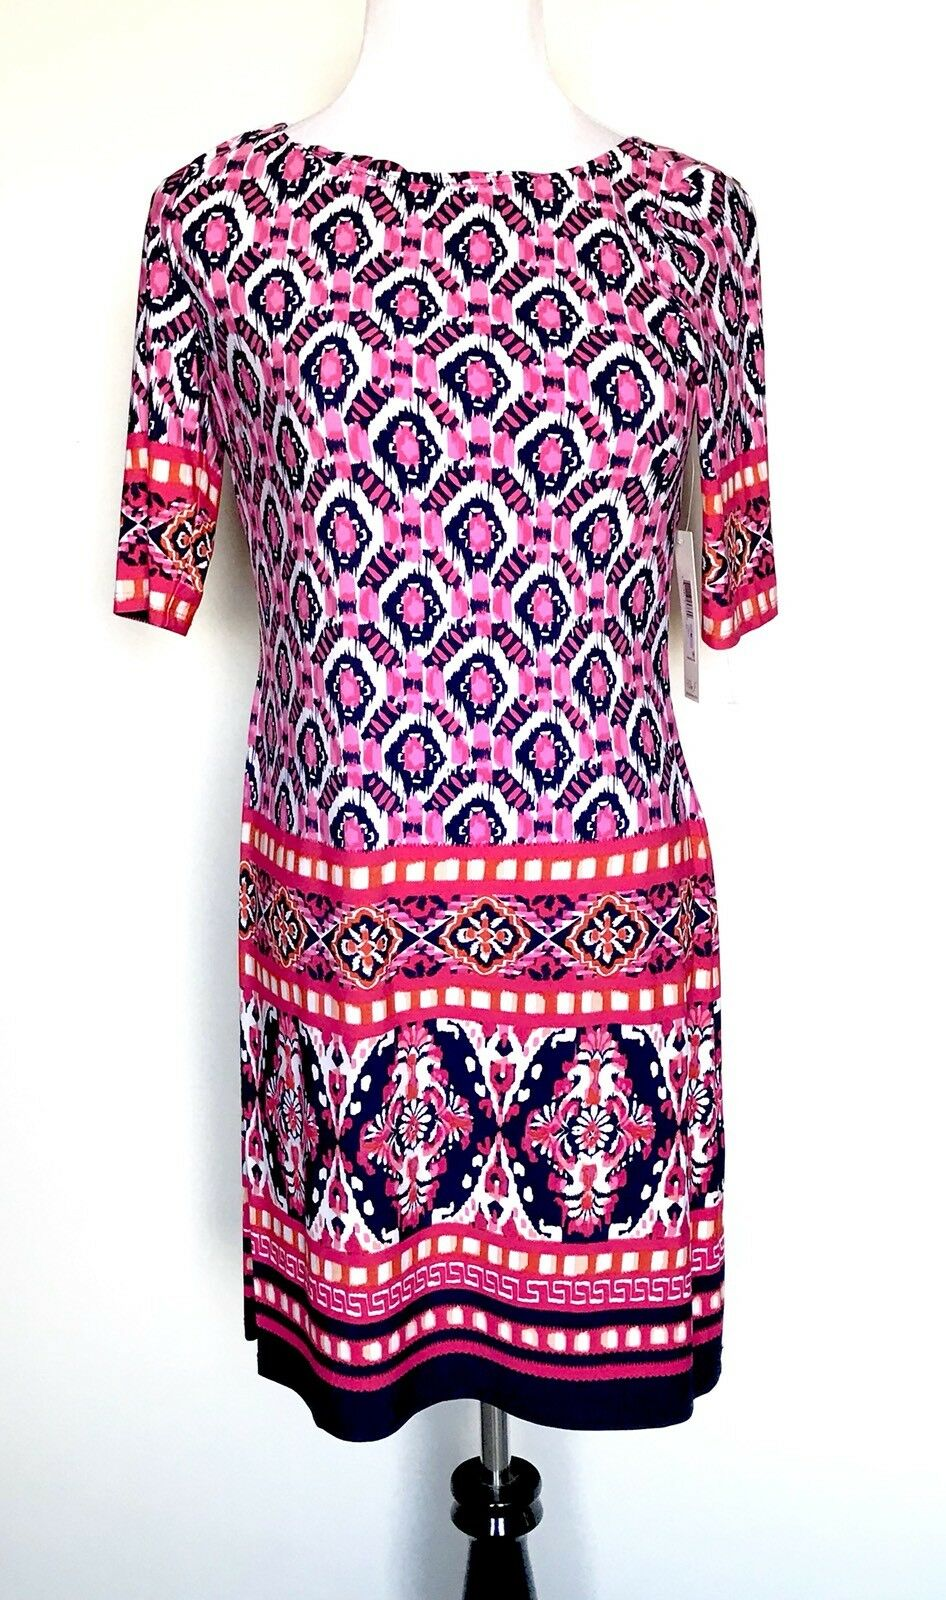 Eliza J Pink Diamond Stretch Tunic Dress NWT Retails $118 Price $59 Size 10